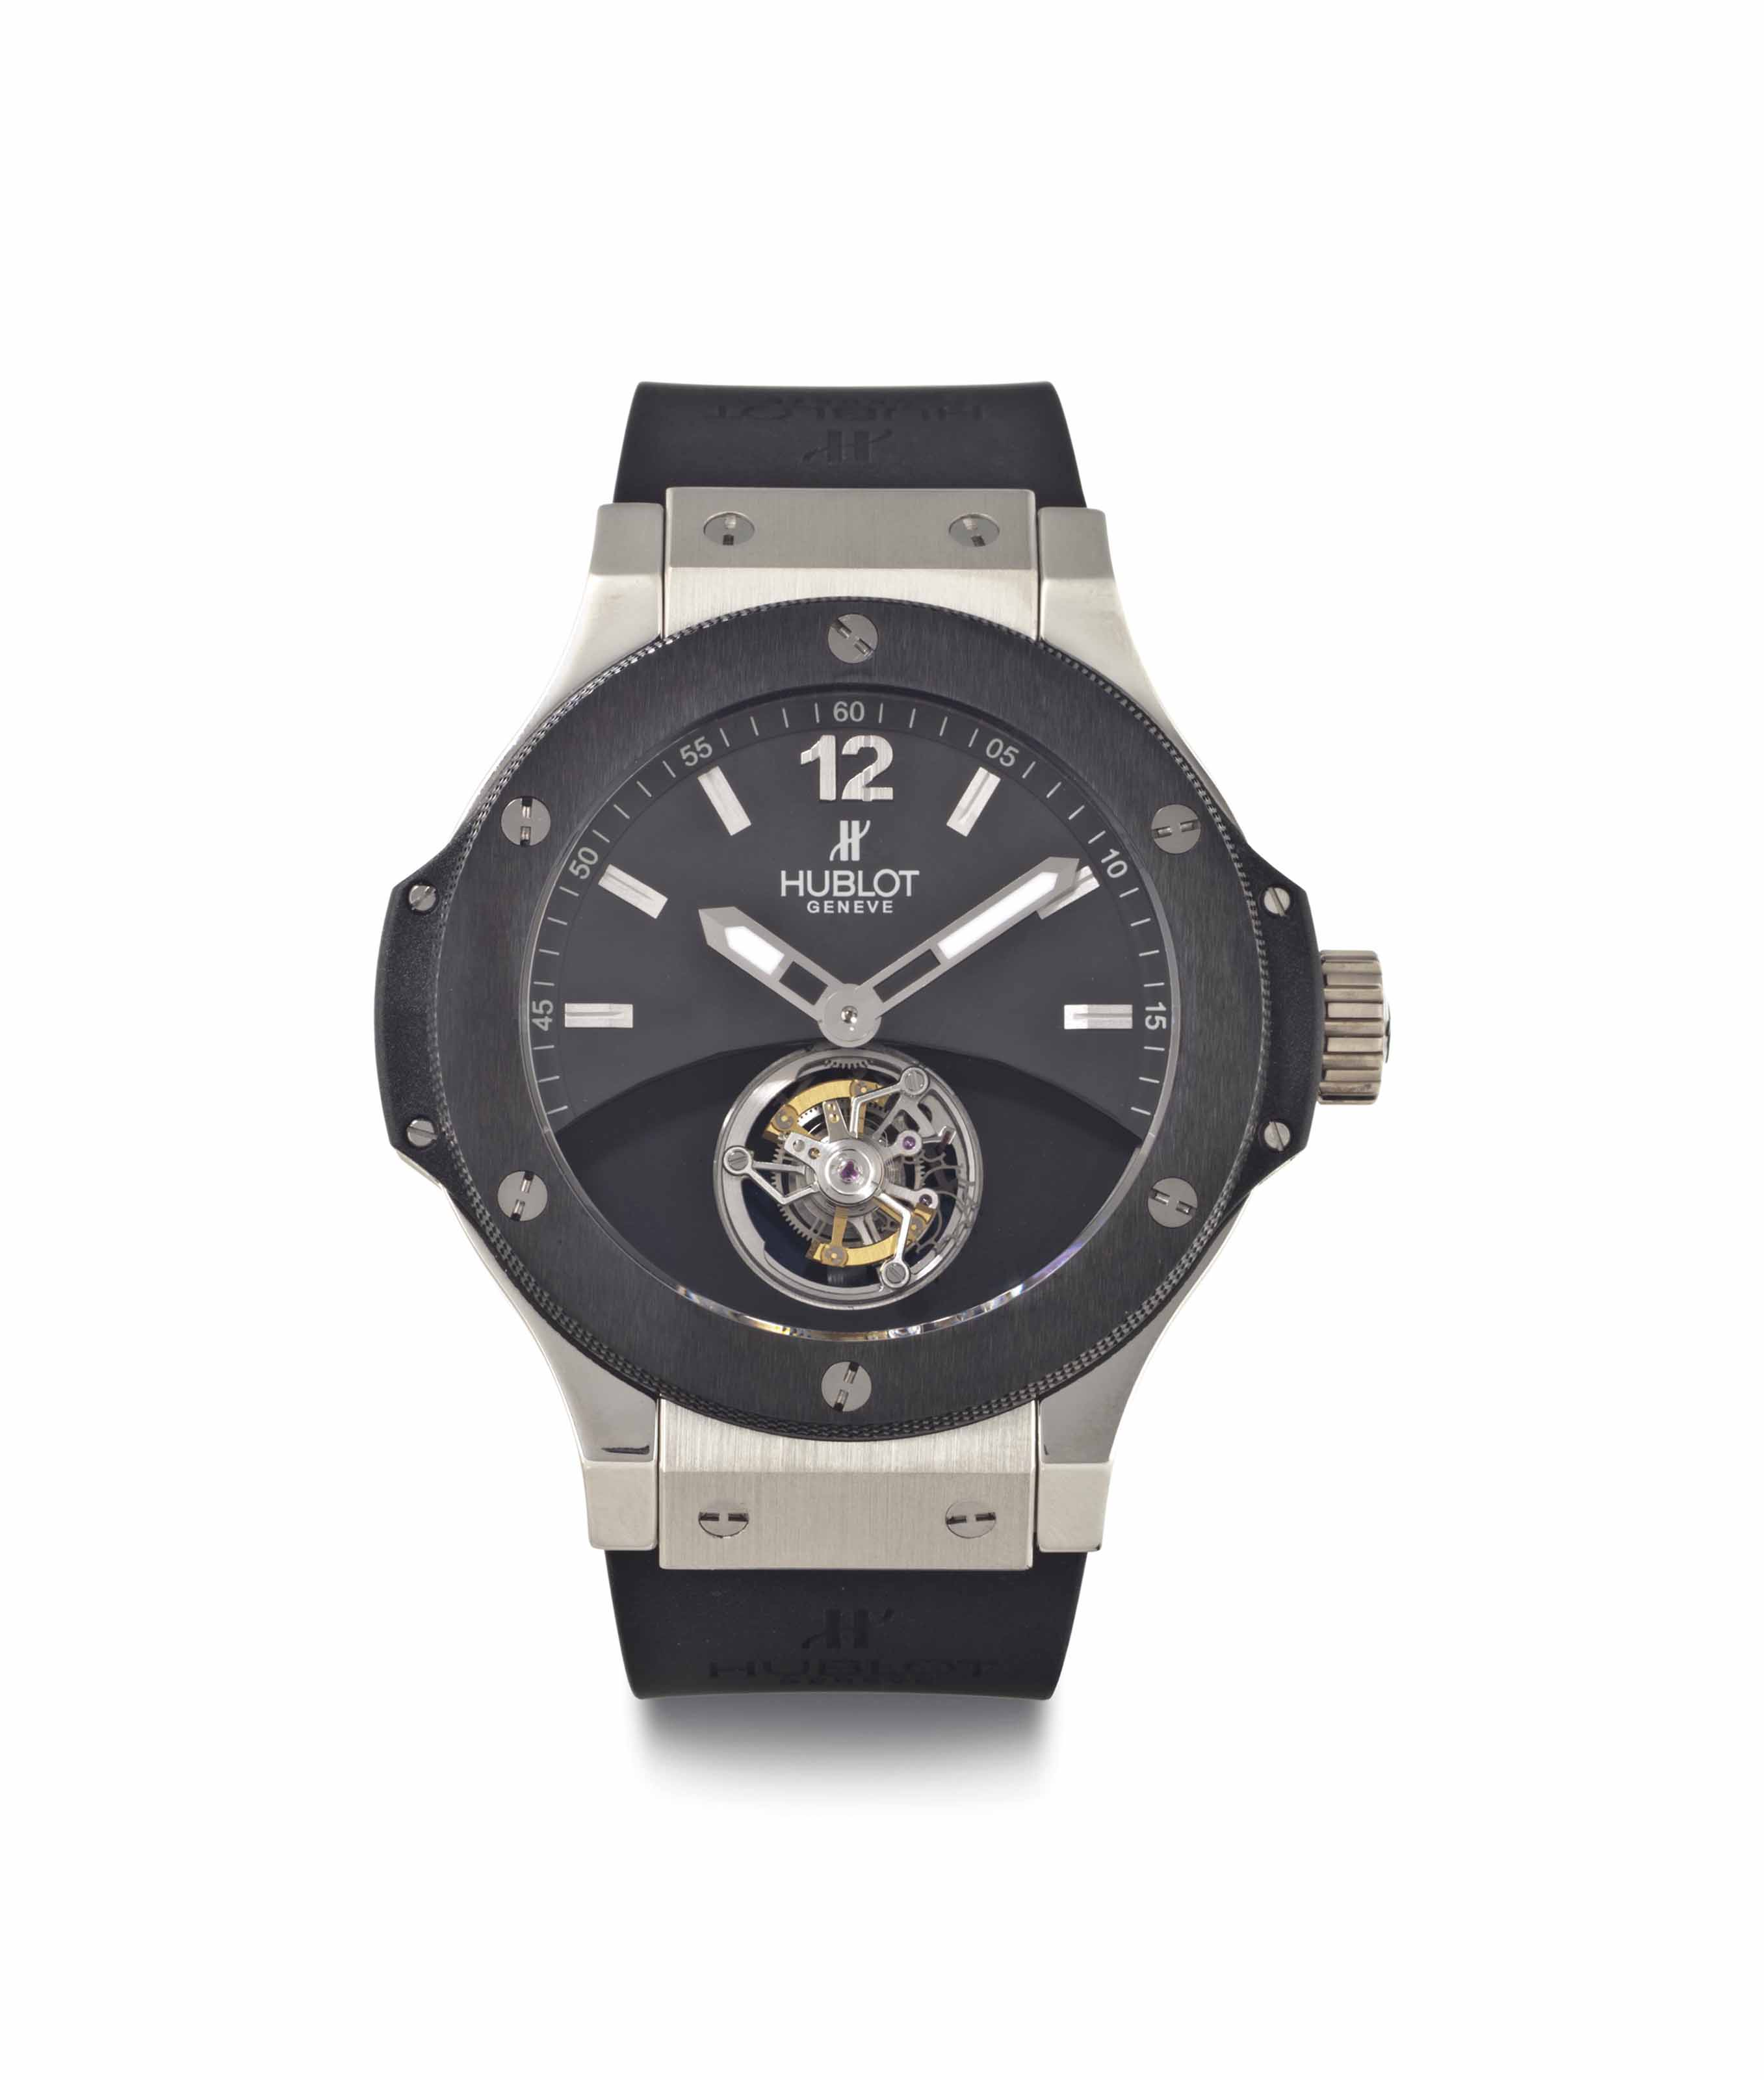 Hublot. A Limited Edition Platinum and Ceramic Wristwatch with Tourbillon